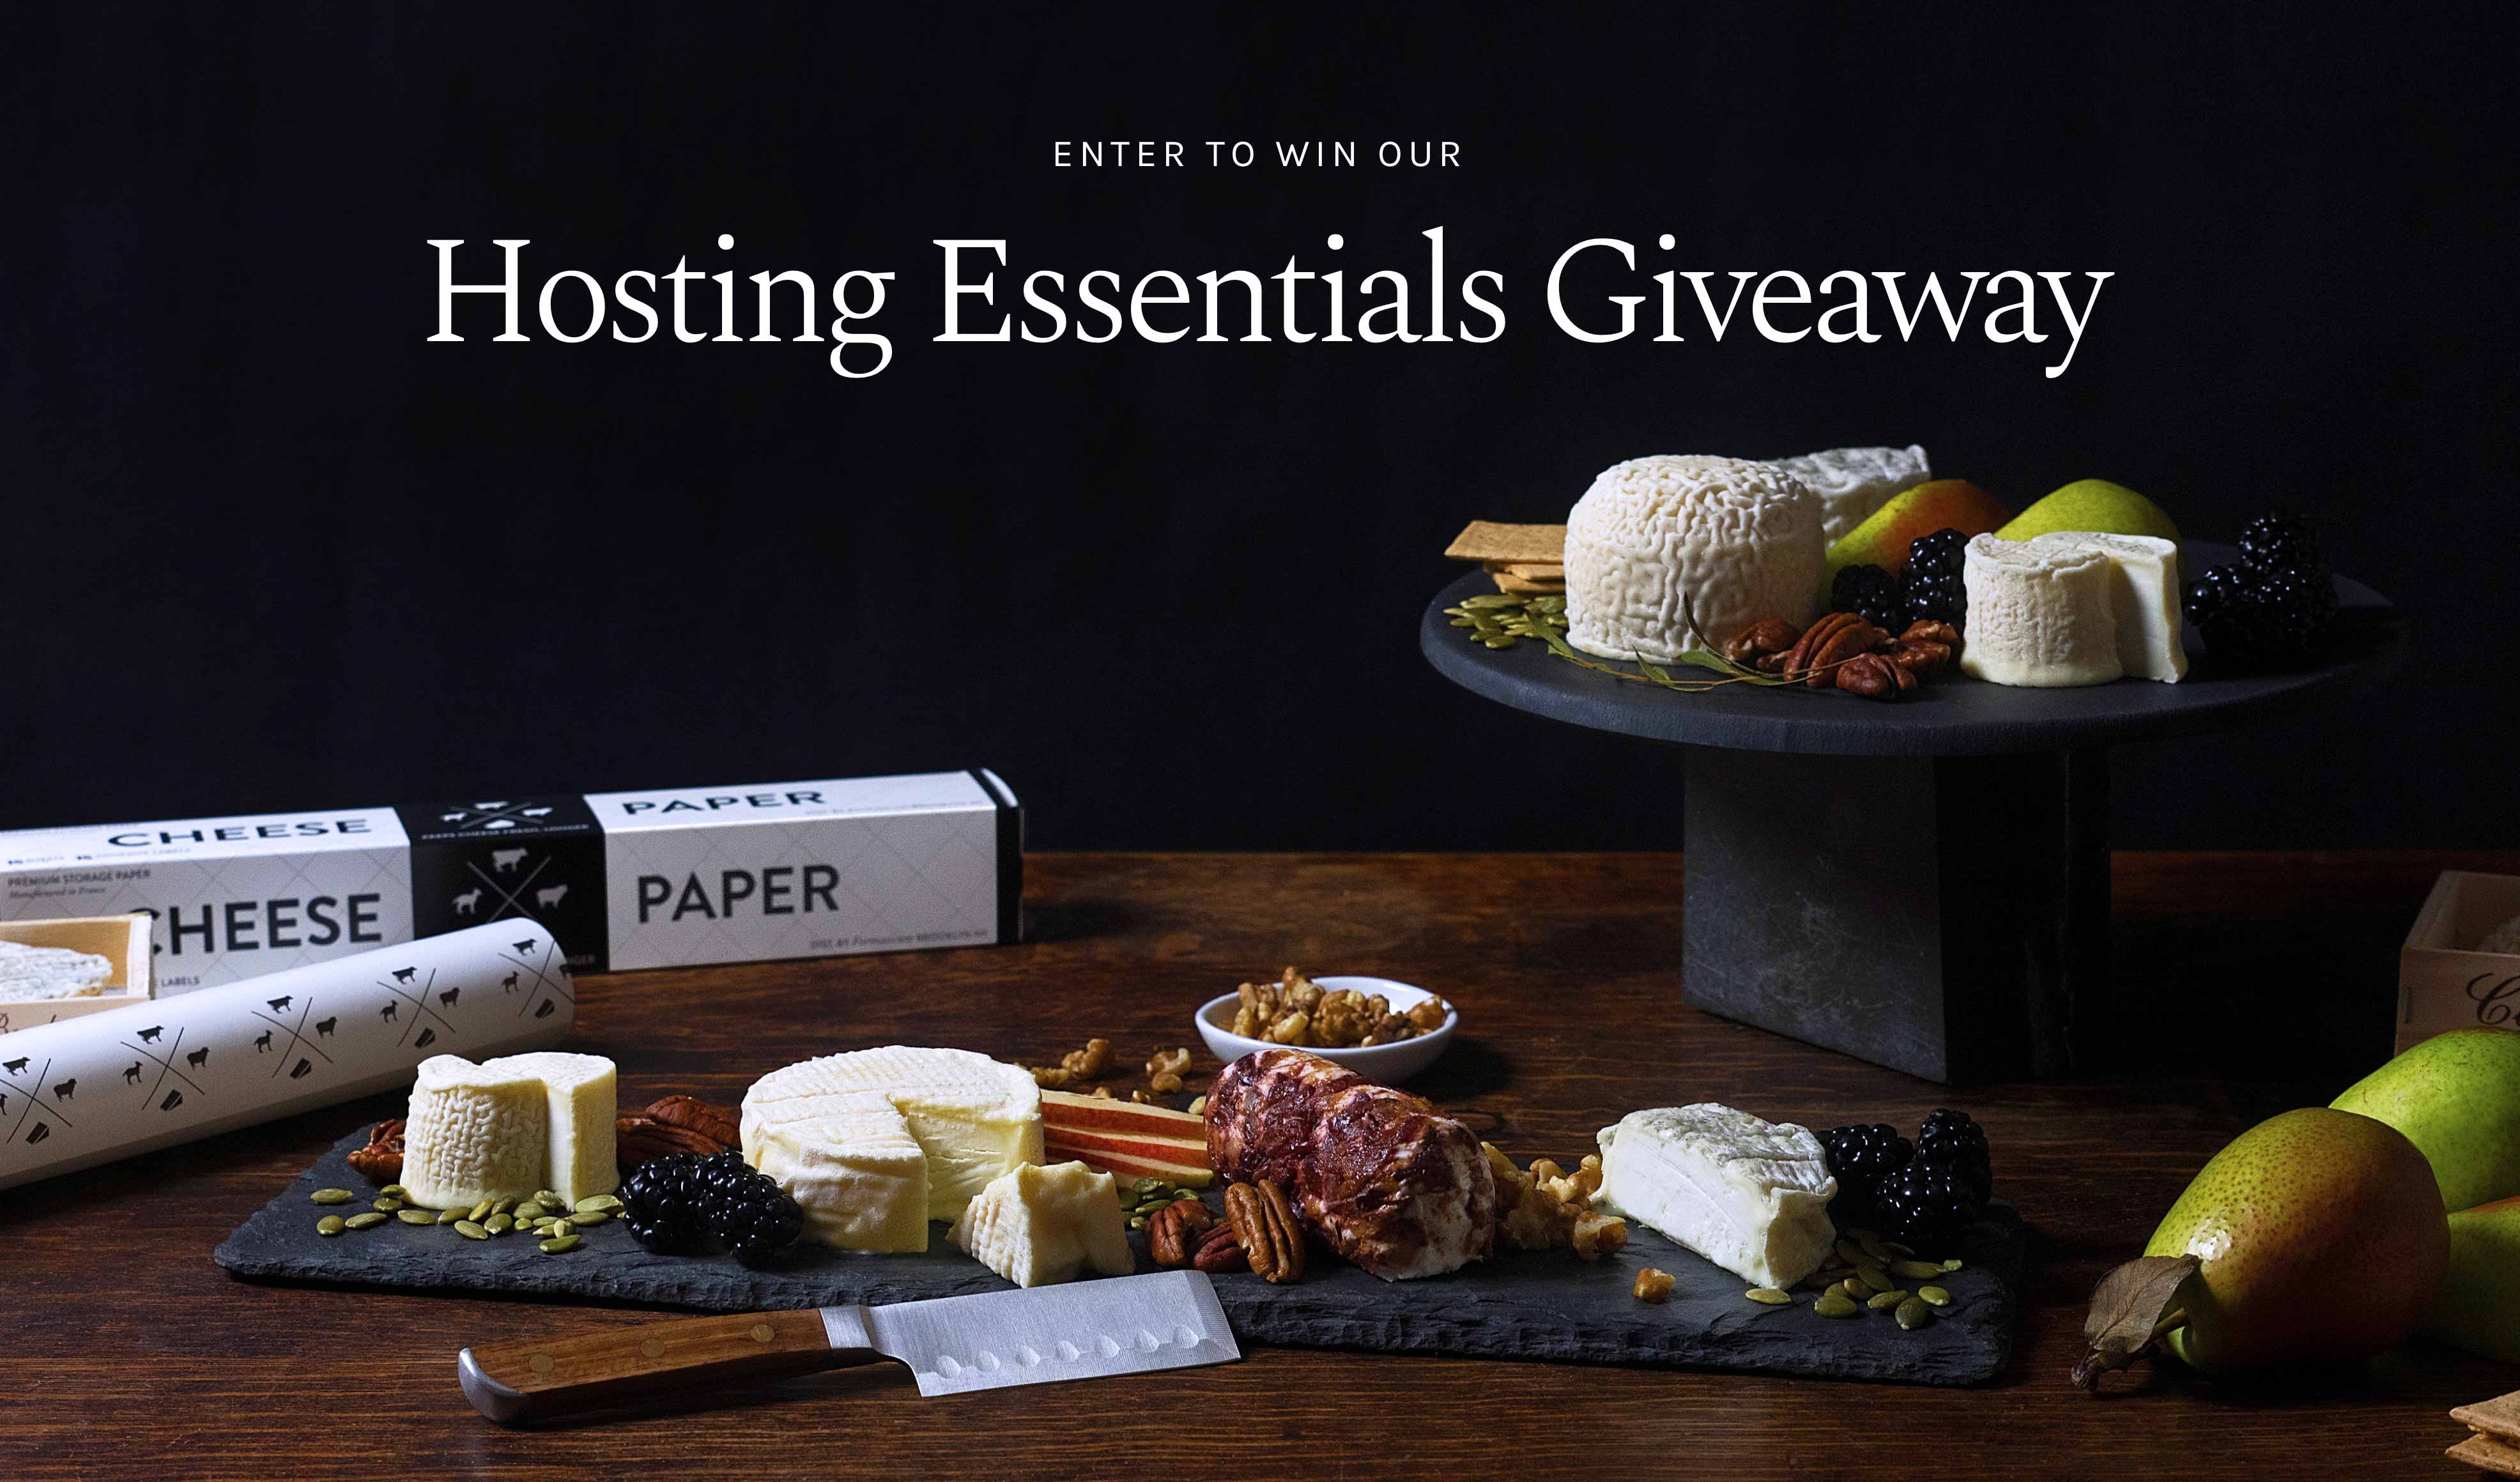 Enter to Win a Vermont Inspired Cheese Plate